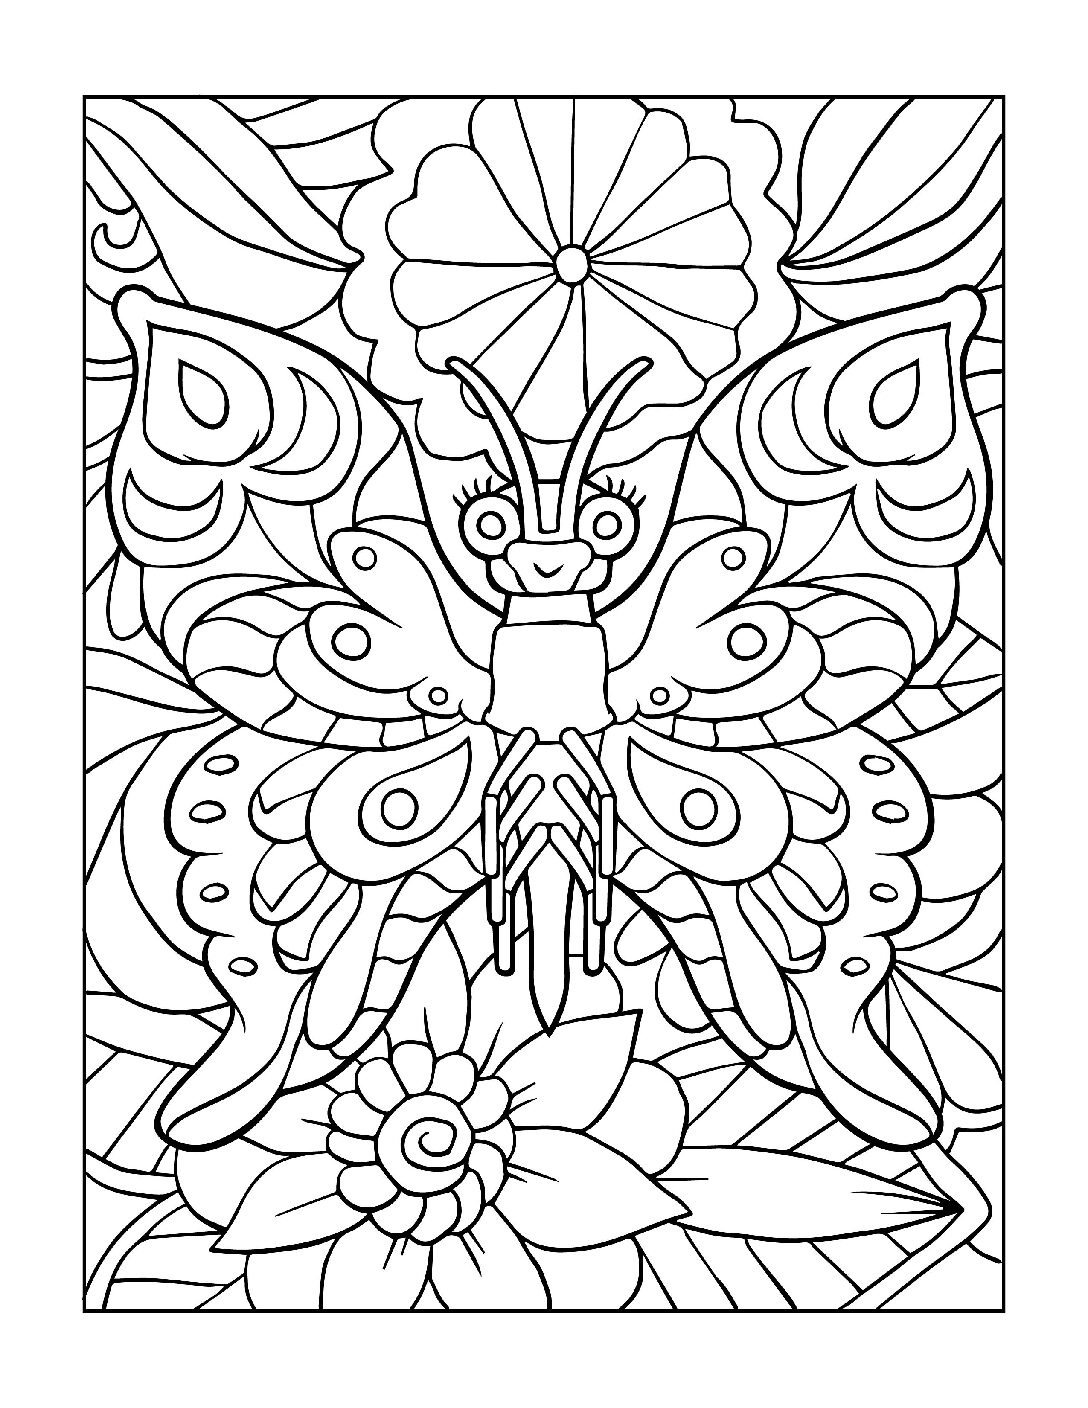 Coloring-Pages_Butterflies-10-01-1-pdf Free Printable Butterfly Colouring Pages